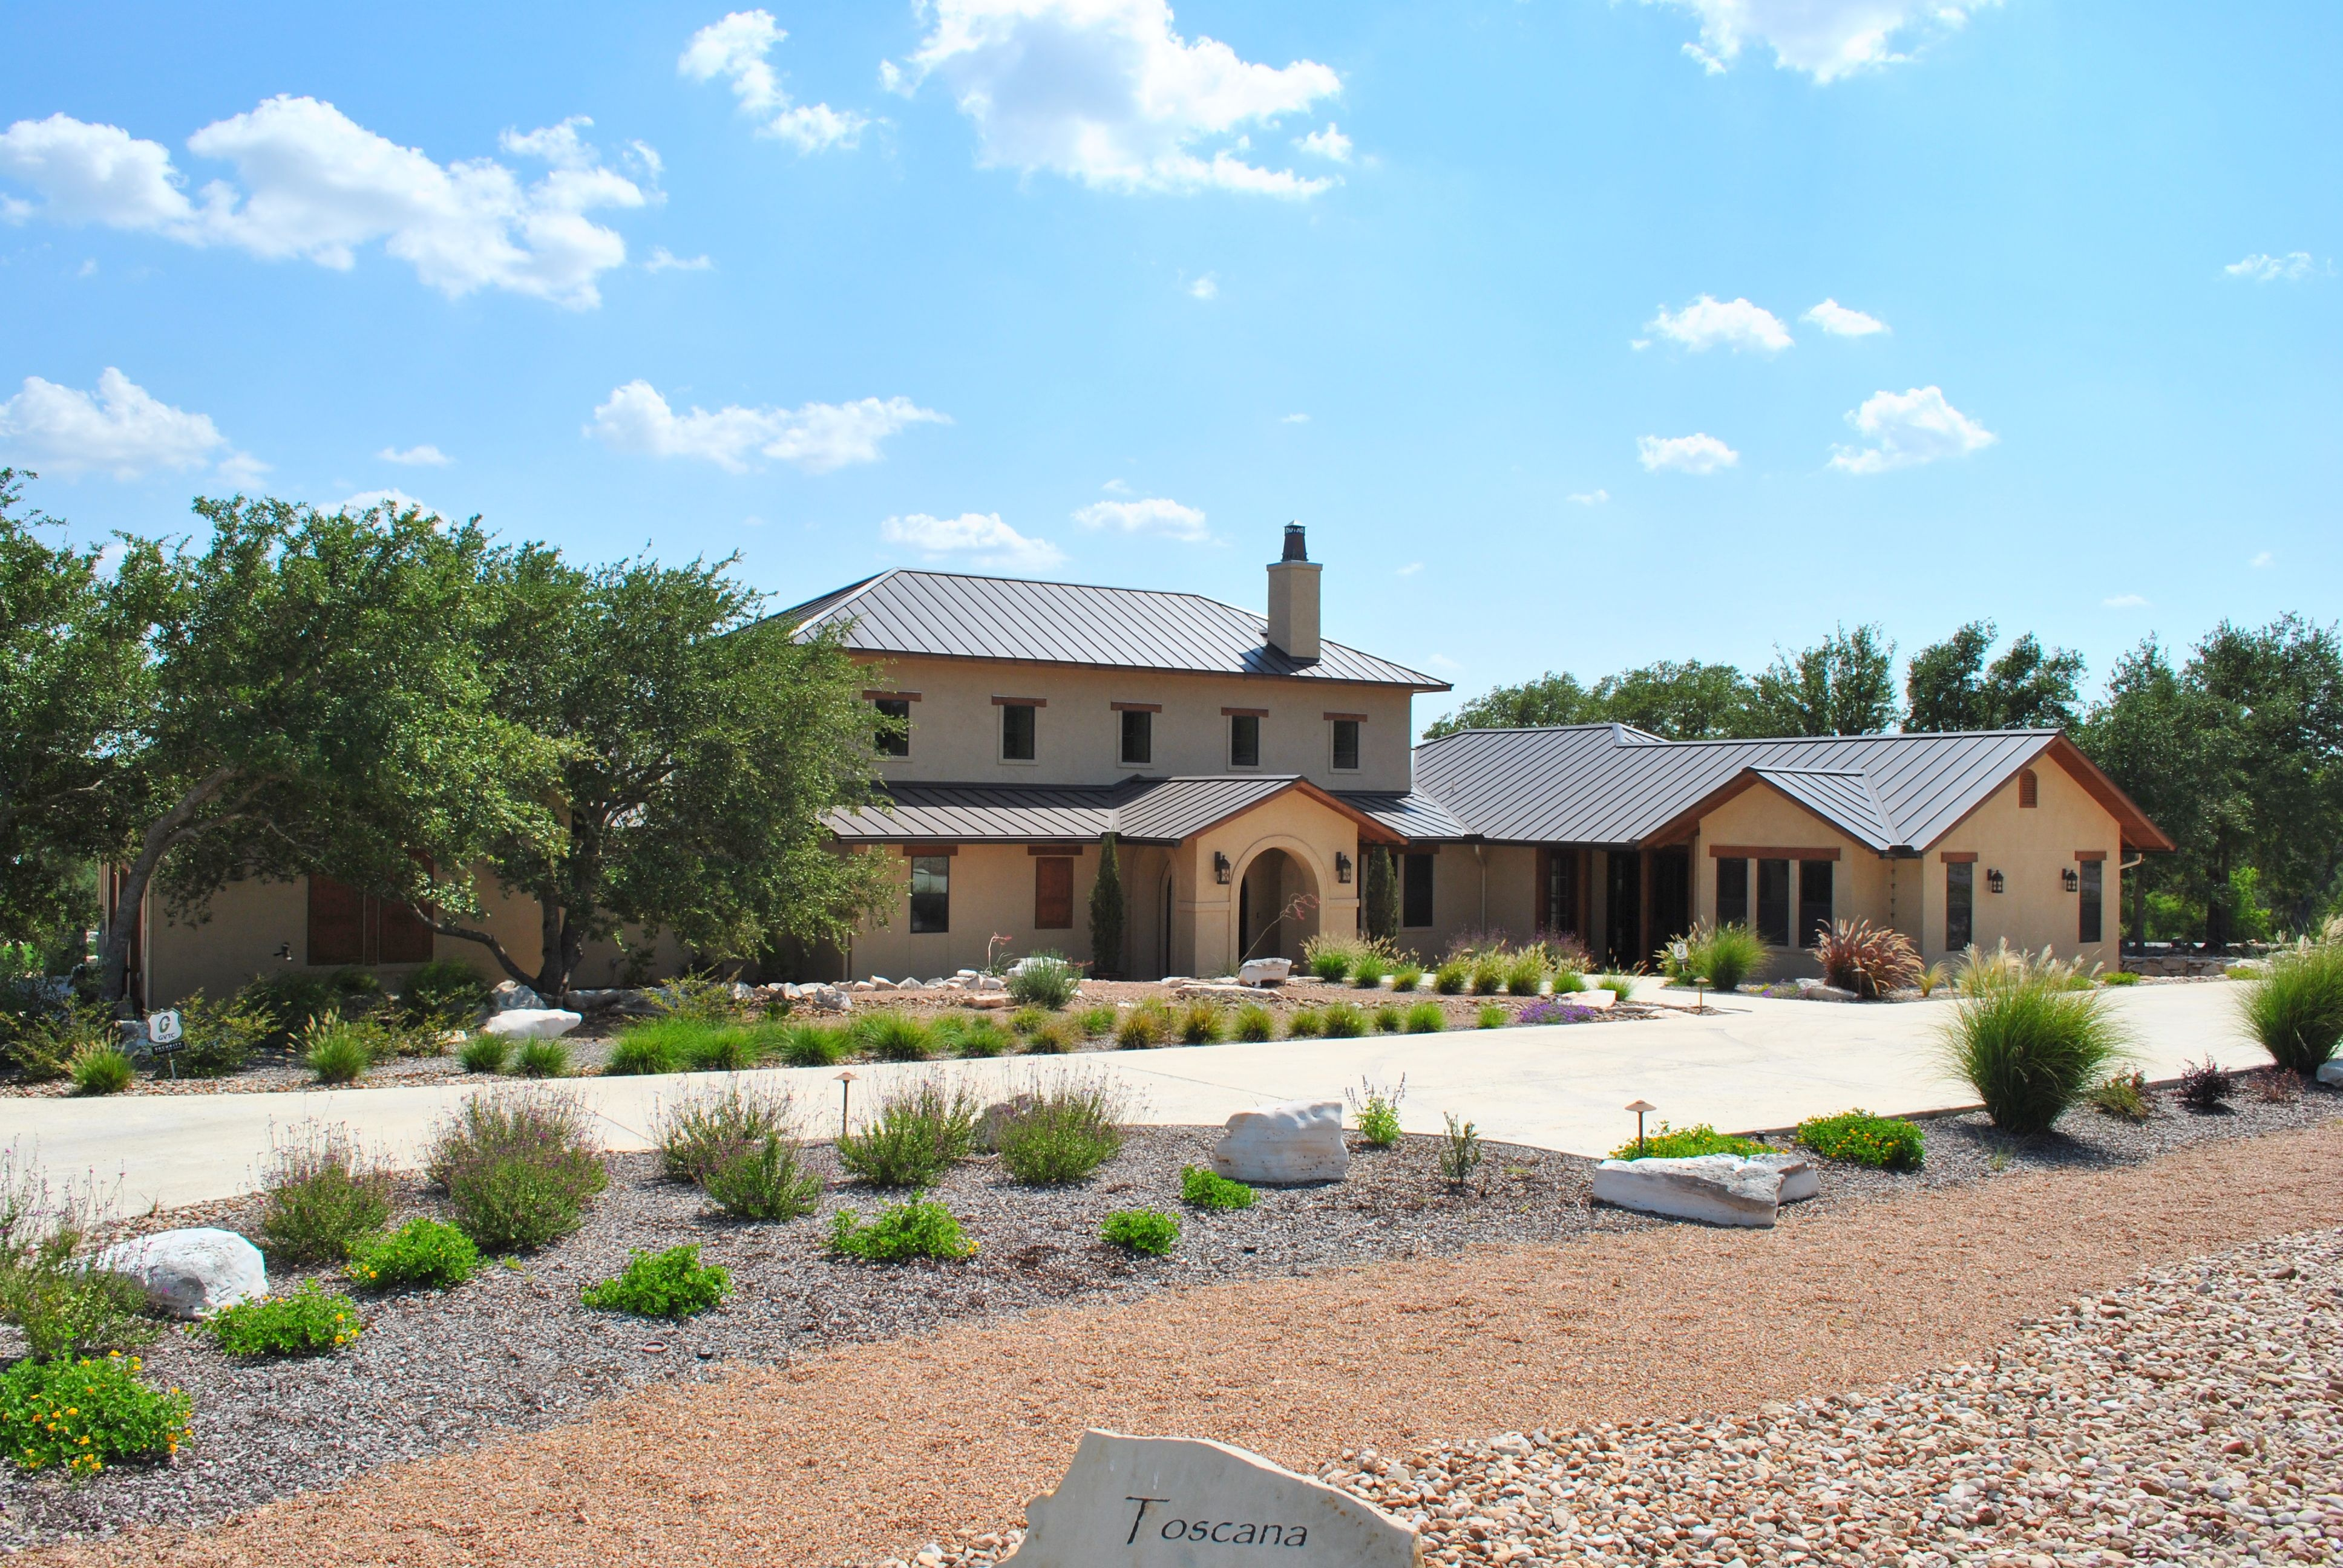 Tuscan Style Home With Stucco Exterior And Metal Roof